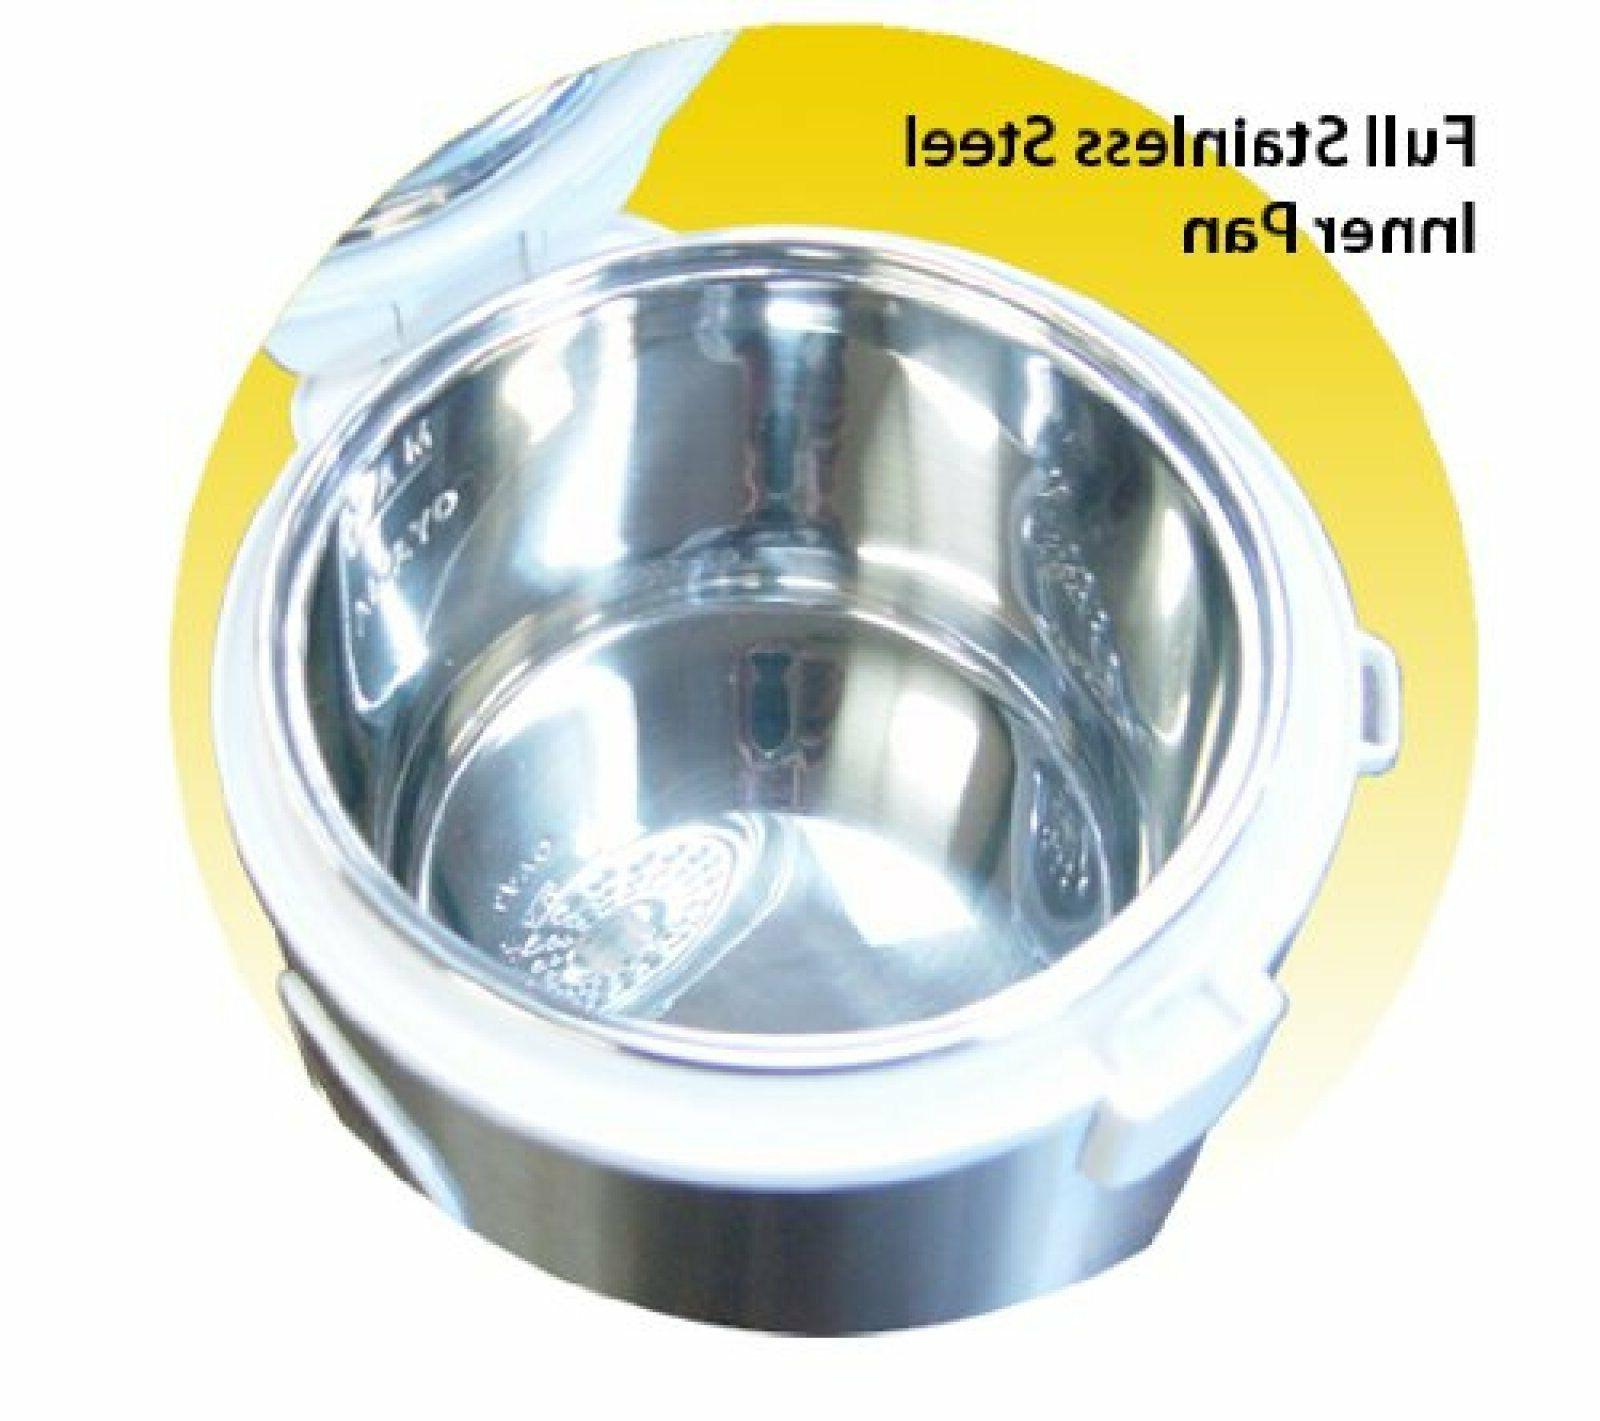 Cooking with Triple Layered Base, Stainless Black